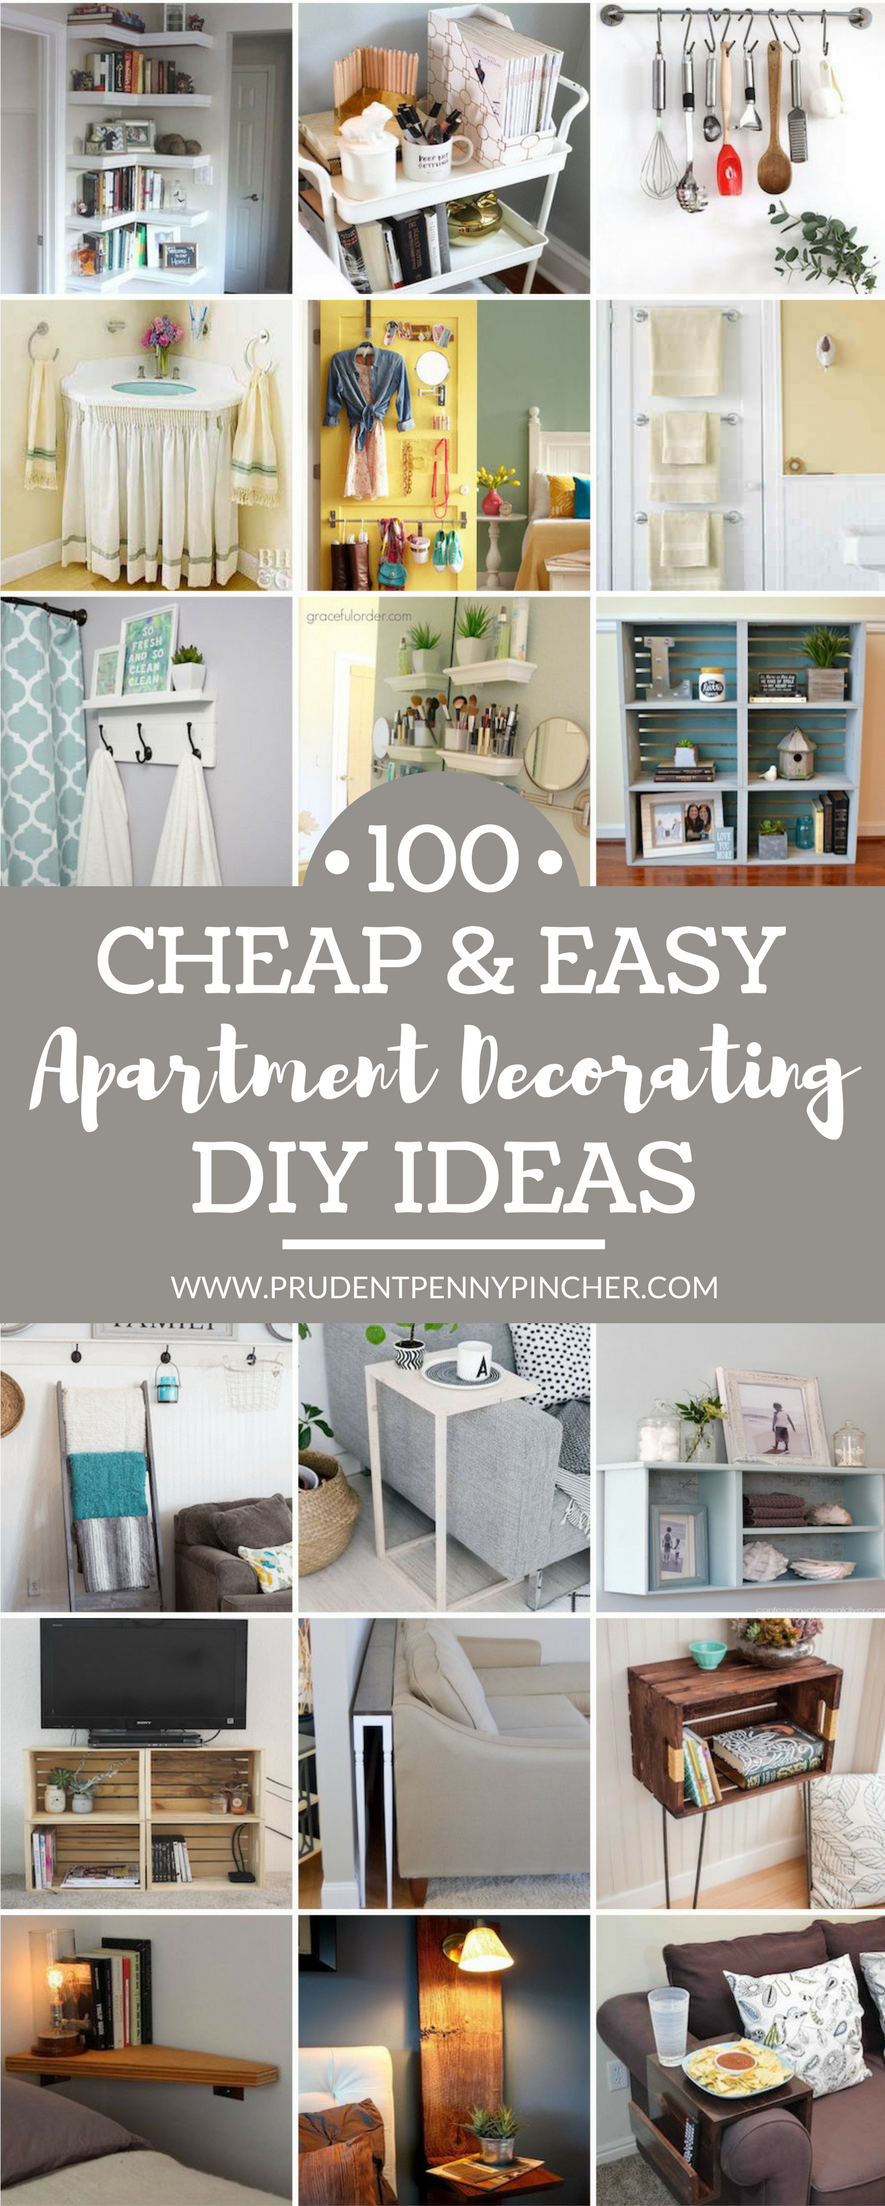 Decorating My Apartment Living Room: 100 Cheap And Easy DIY Apartment Decorating Ideas